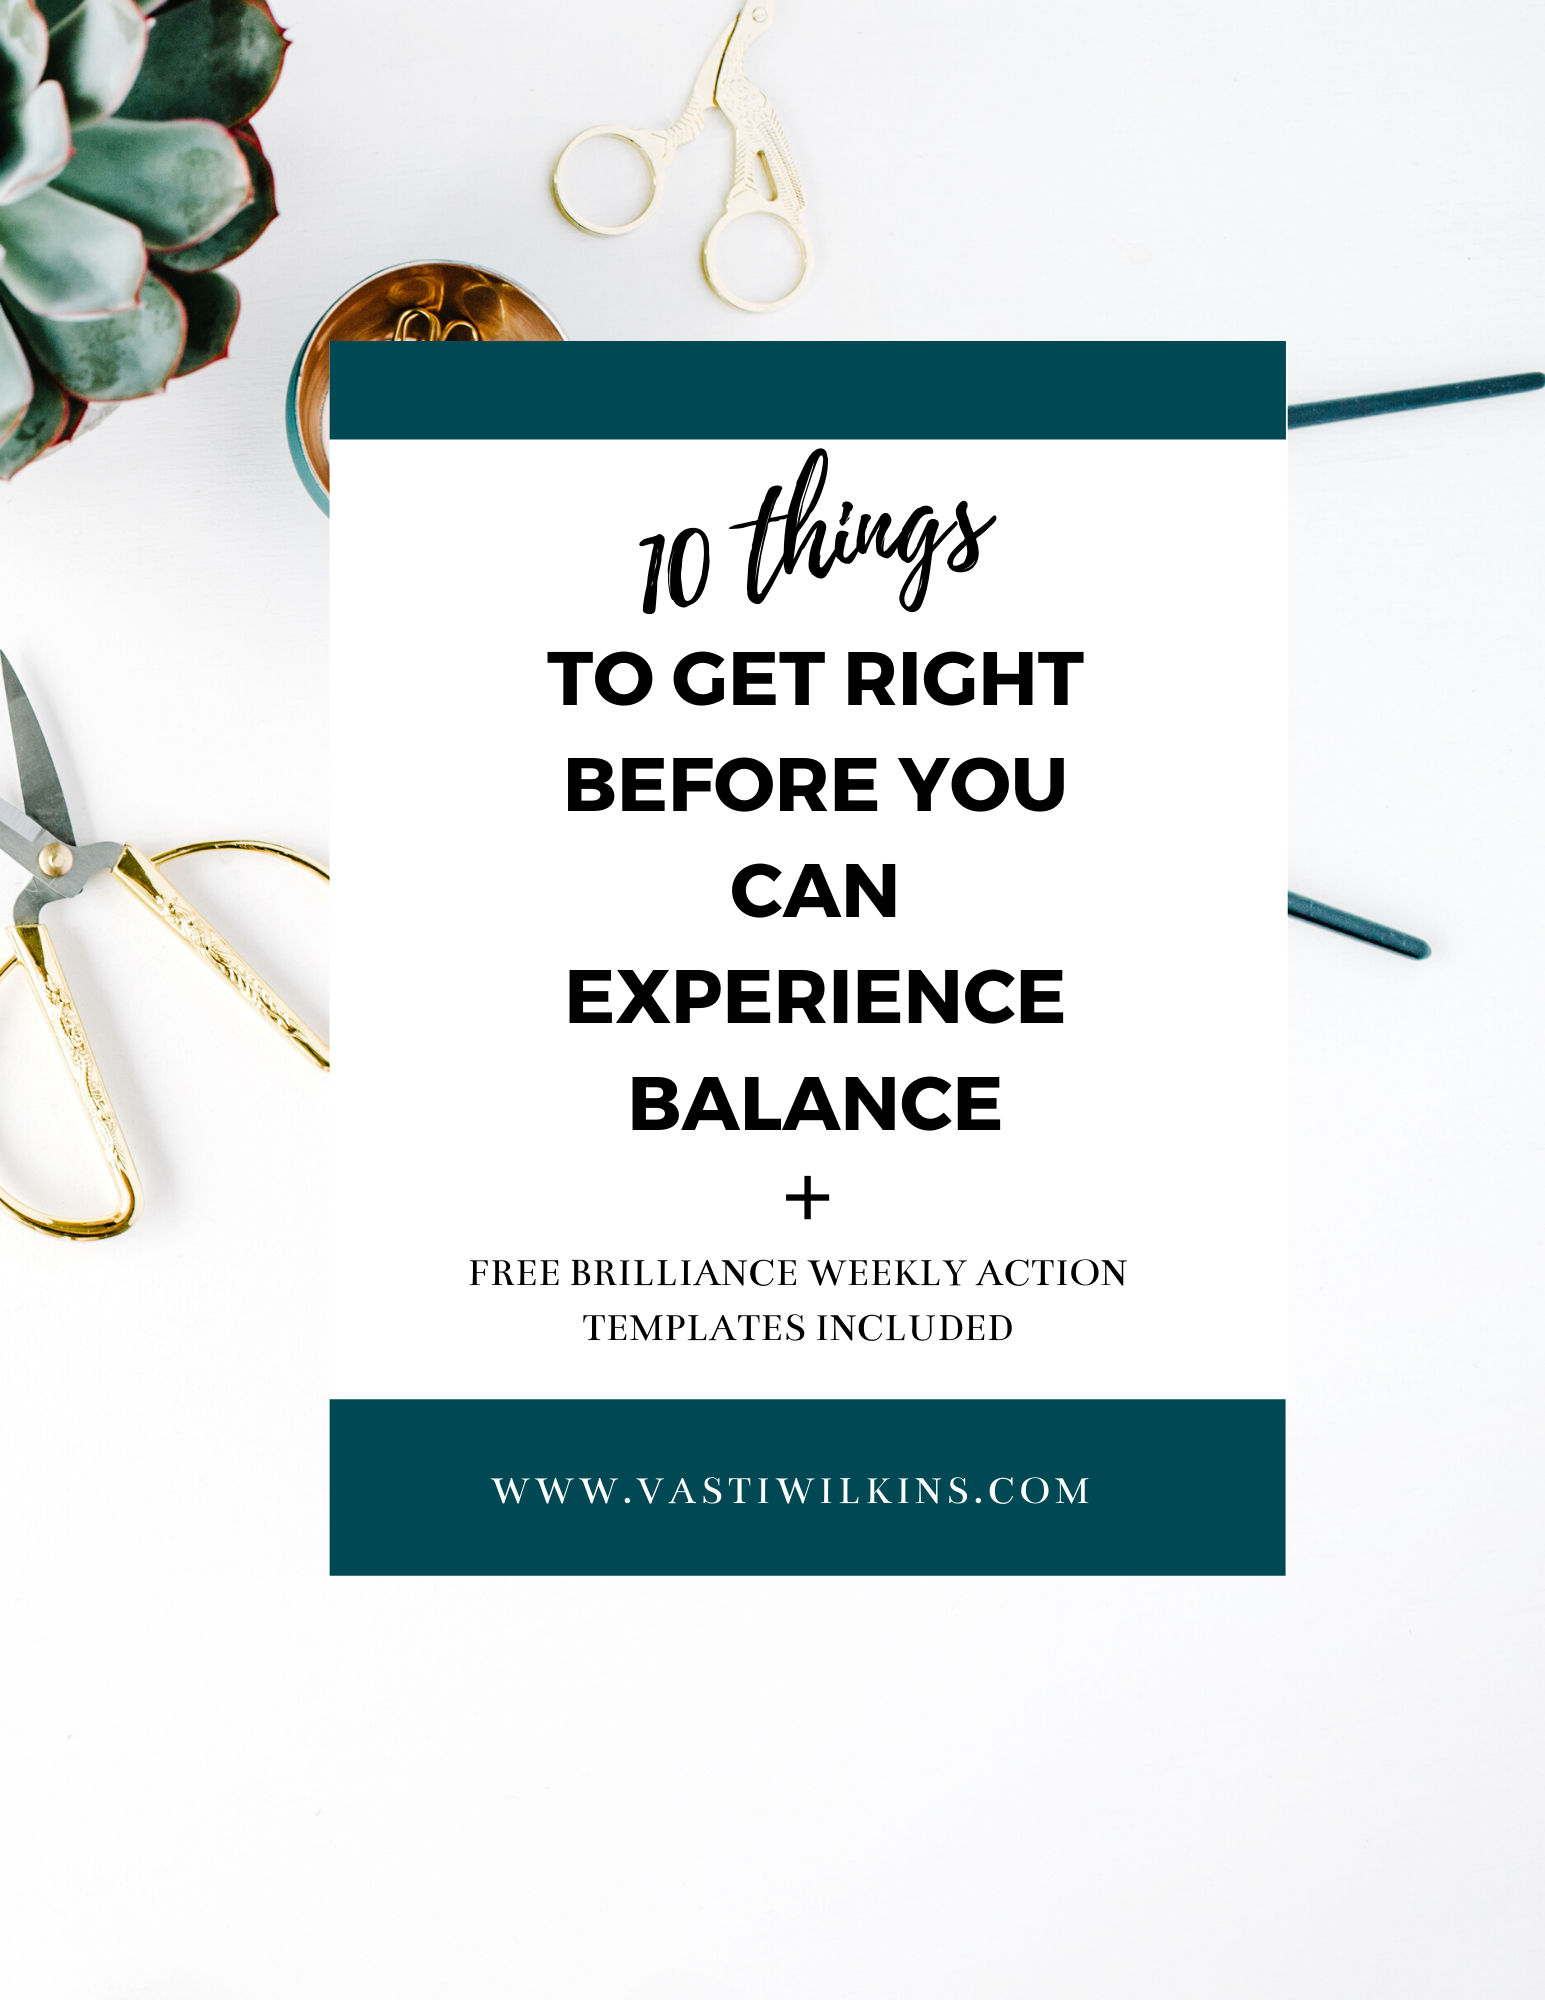 10 Things to Get Right Before You Can Experience Balance Guide